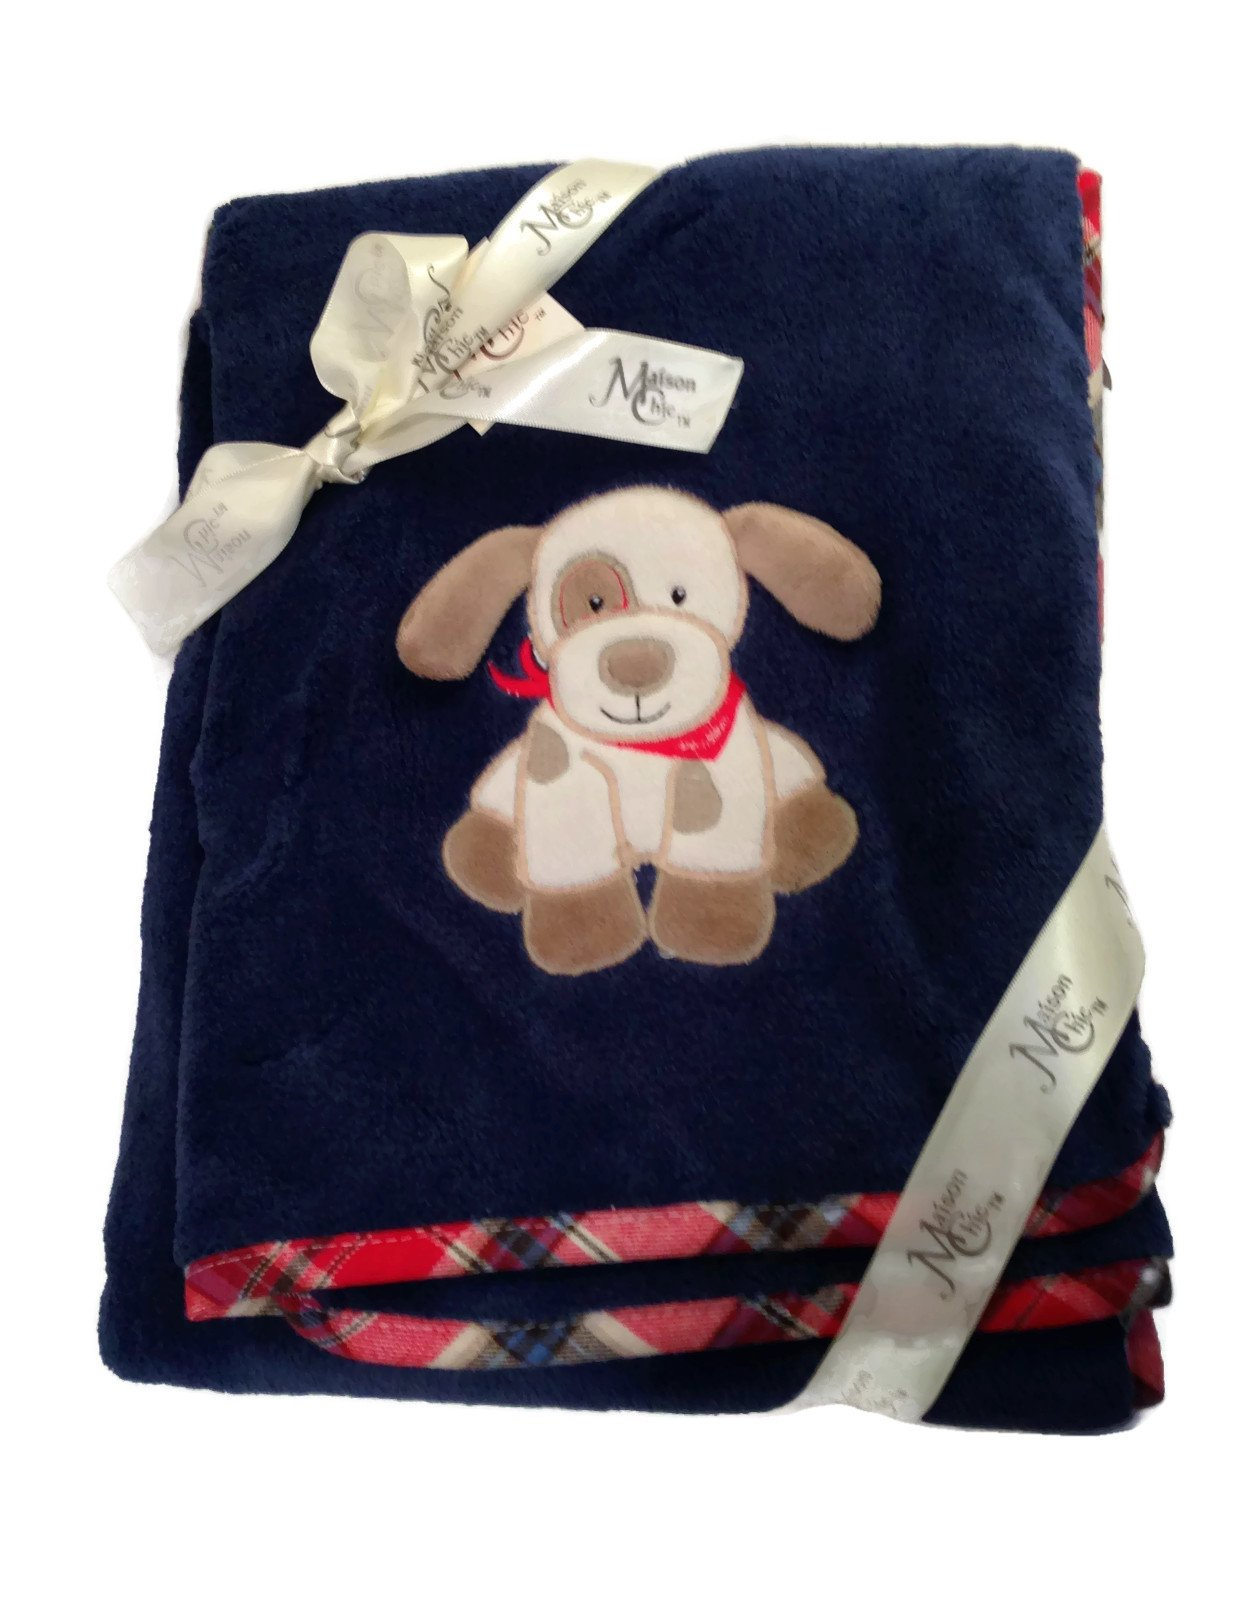 Maison Chic Max The Puppy Plush Baby Blanket